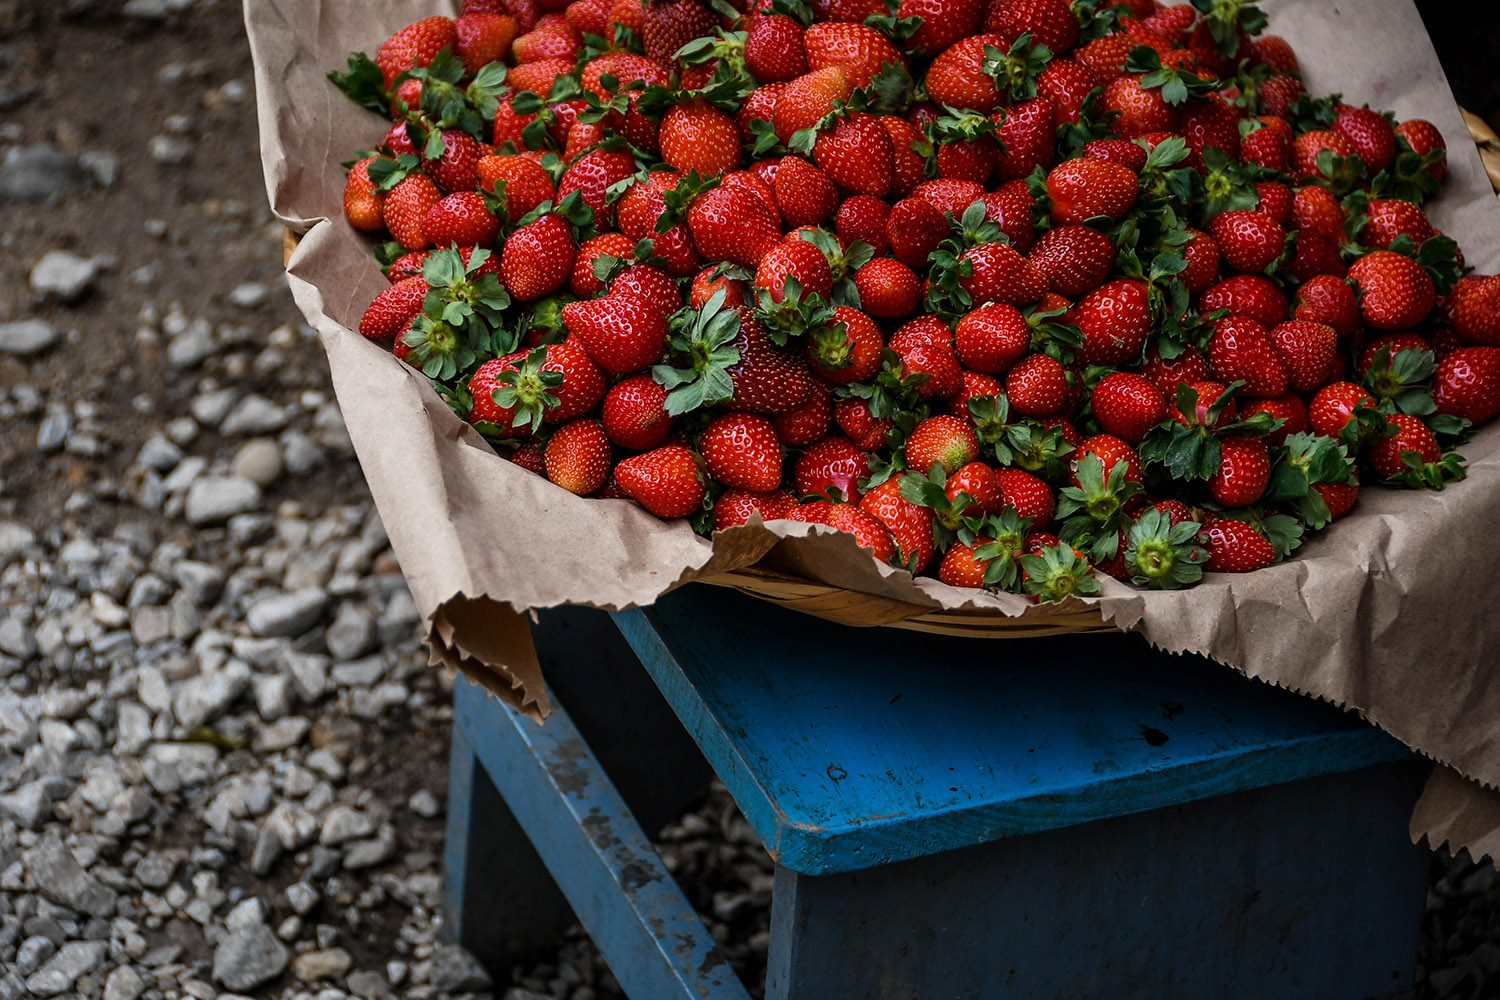 Things to Do in Oaxaca Explore the Markets Organic Market Strawberries